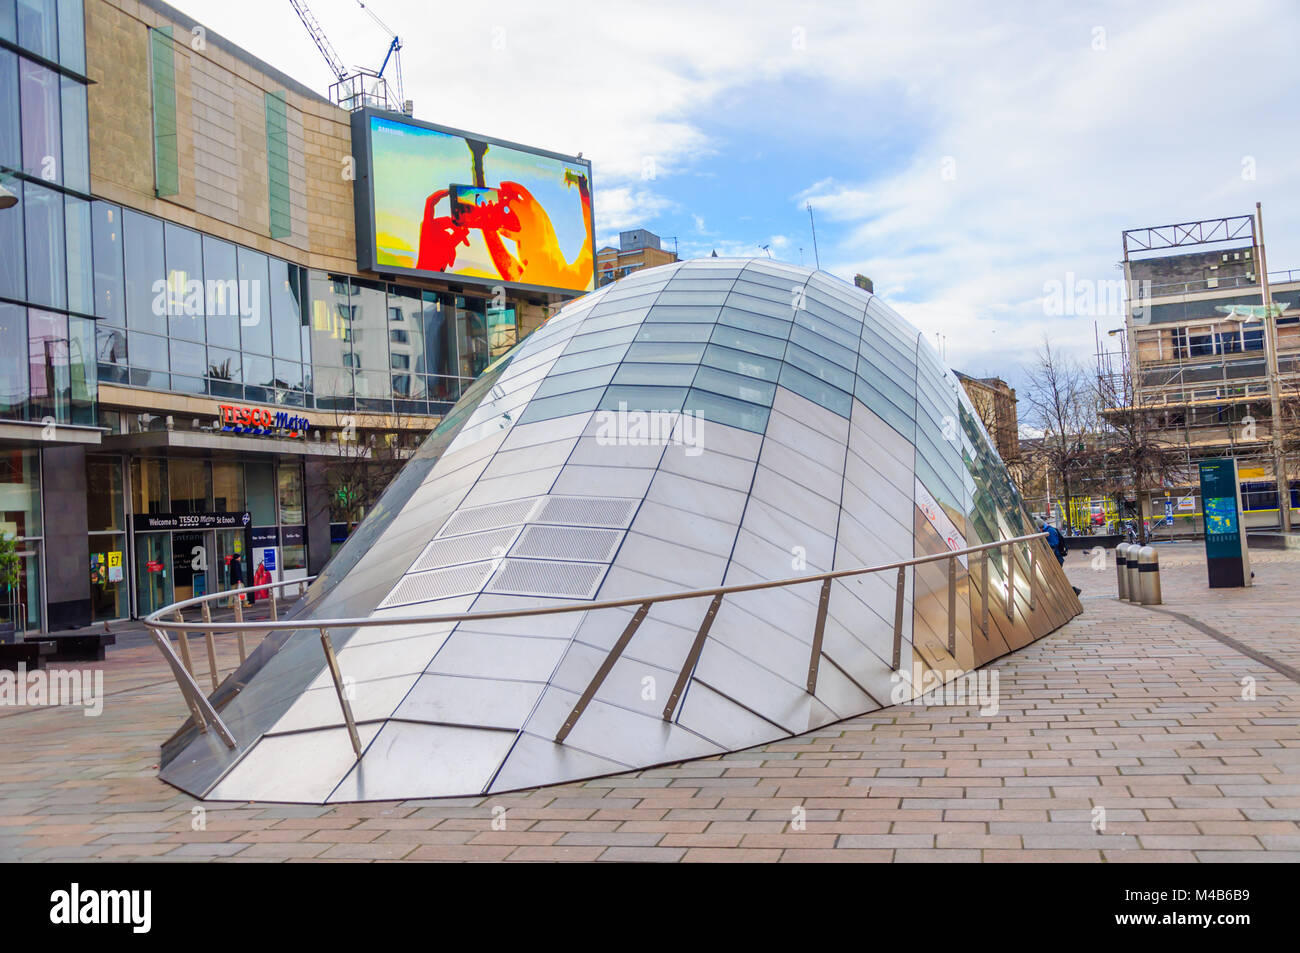 Modern design of the glass and steel canopy at the entrance of St. Enoch subway station at St Enoch Square, Glasgow, - Stock Image